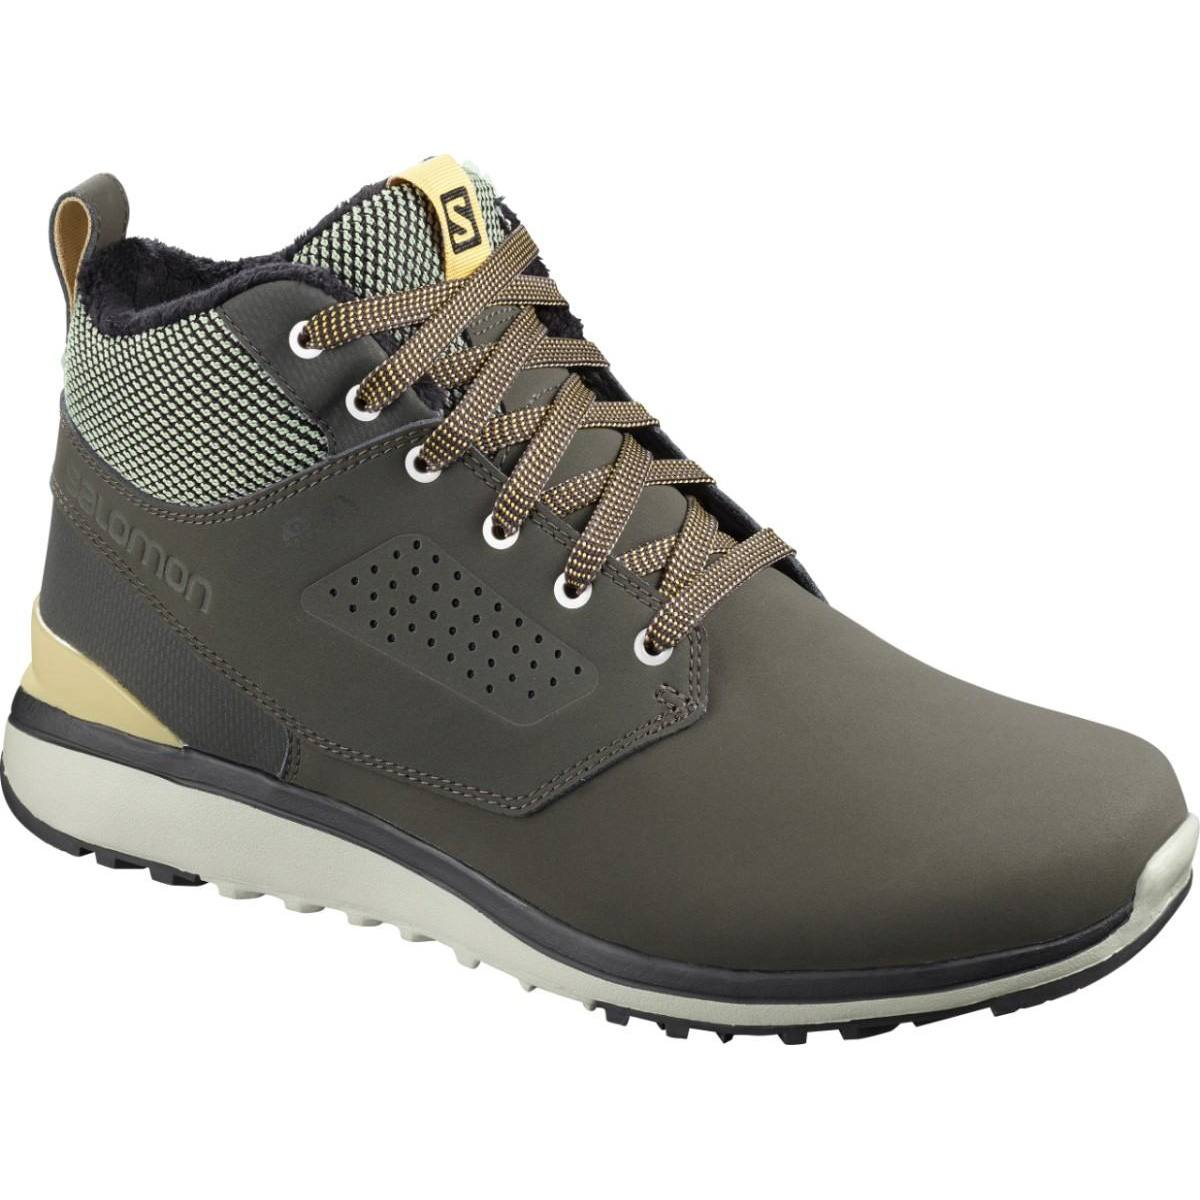 Salomon Ghete activitati urbane Salomon UTILITY FREEZE CS WP - Maro